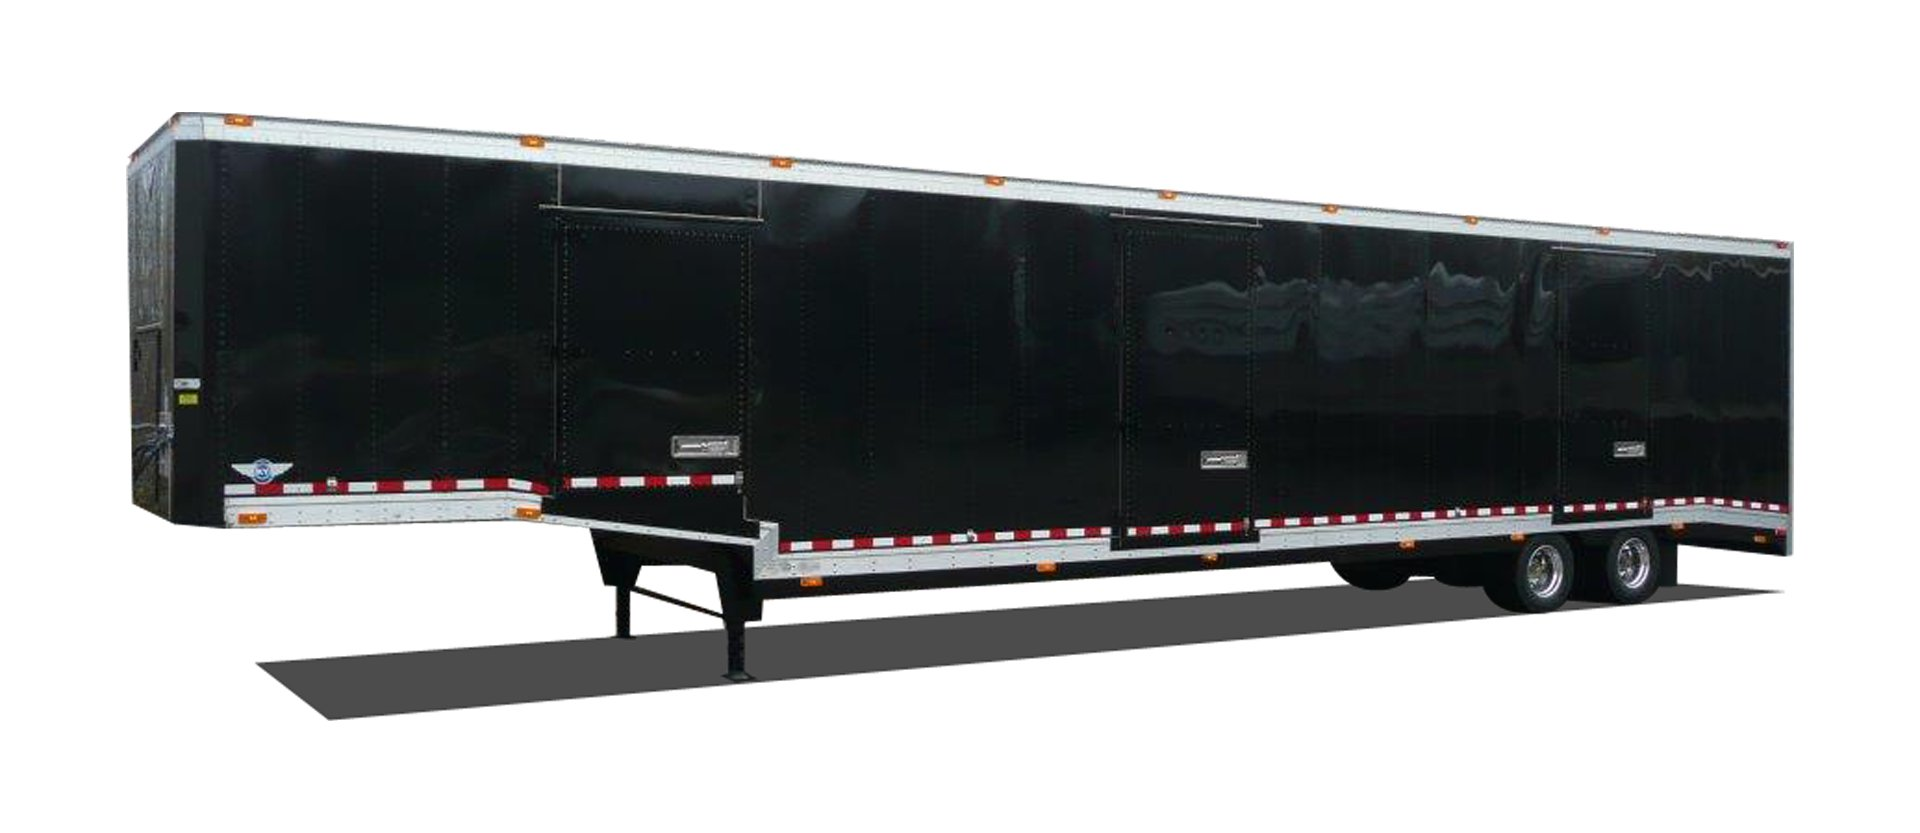 Enclosed Auto Vehicle Transport Specialty Trailers